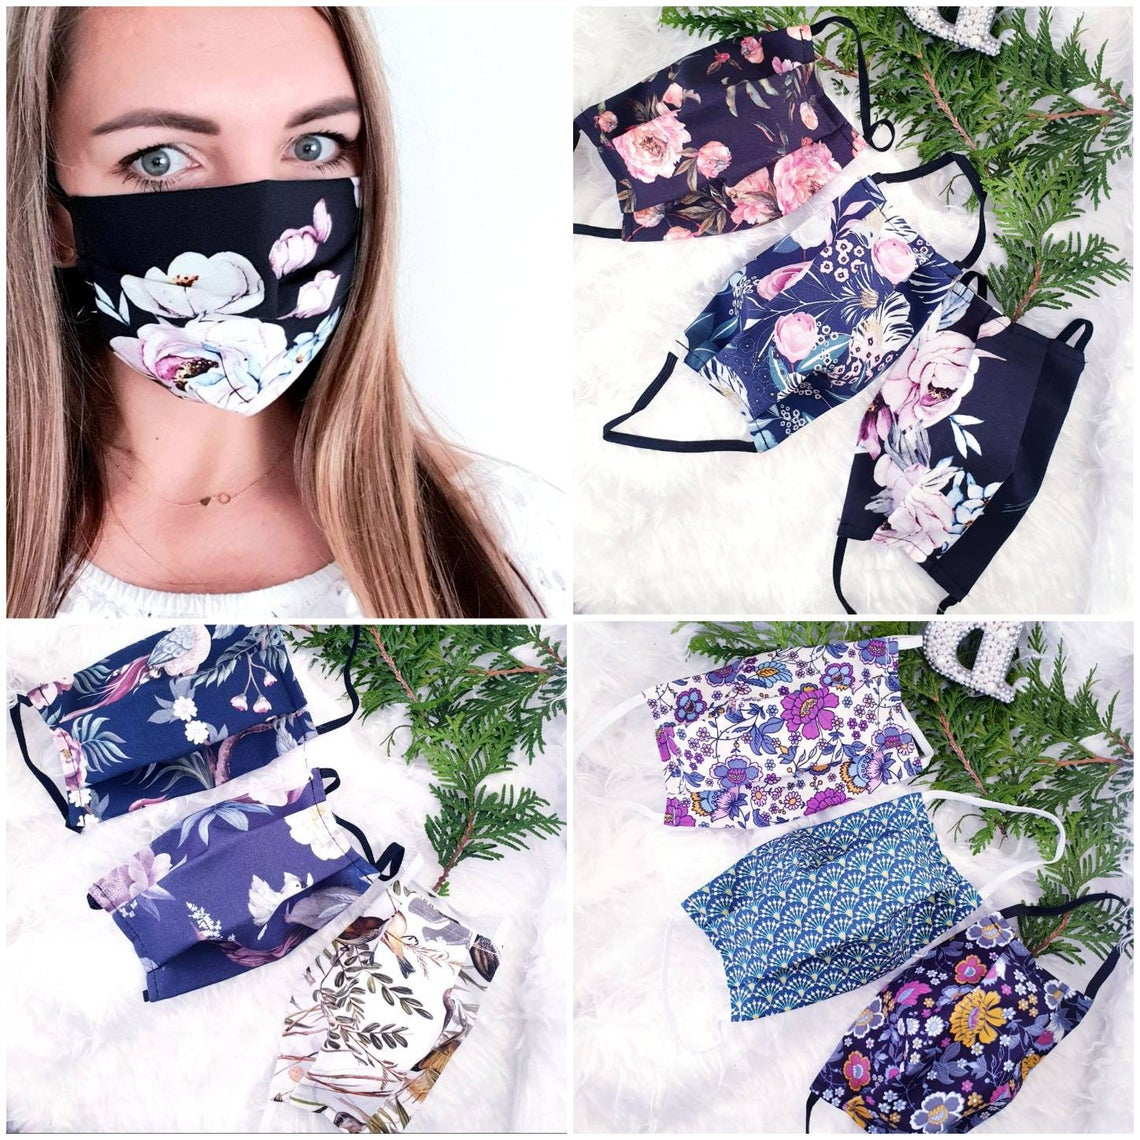 SALE Women Face Mask with Filter Pocket Elastic NEW DESIGNS Spring Summer Flowers washable reusable handmade Mothers day present